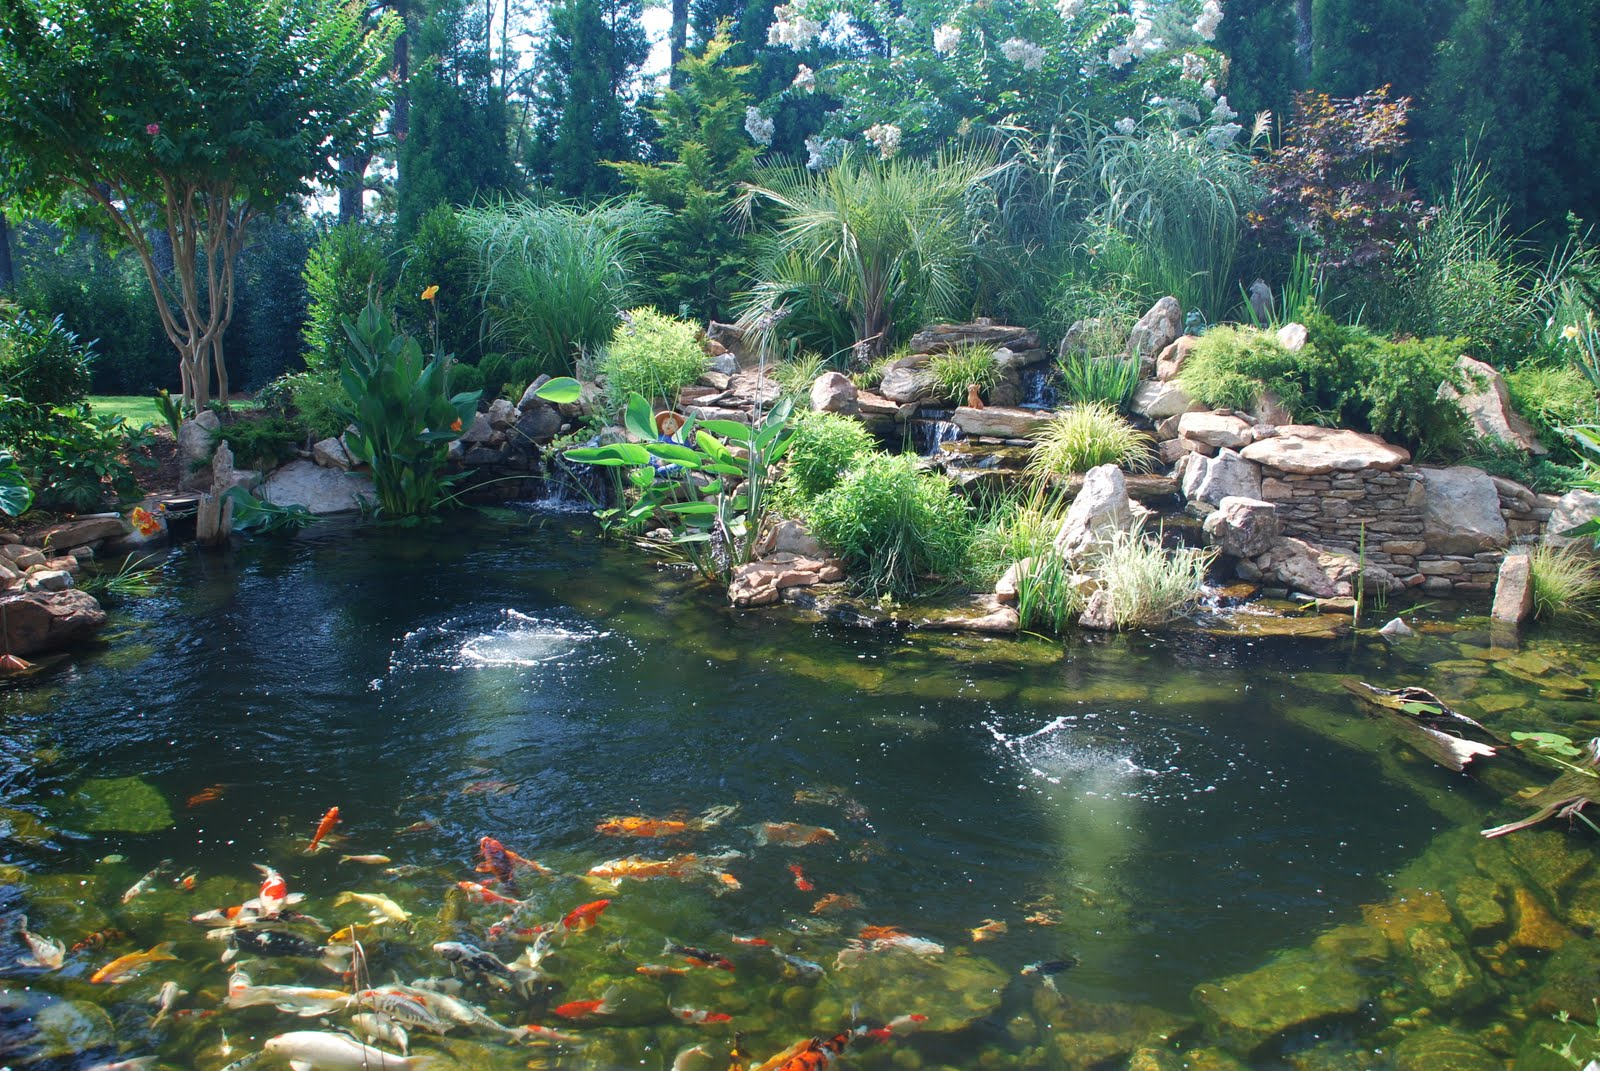 Splendor Koi & Pond: Koi Ponds require diligence!